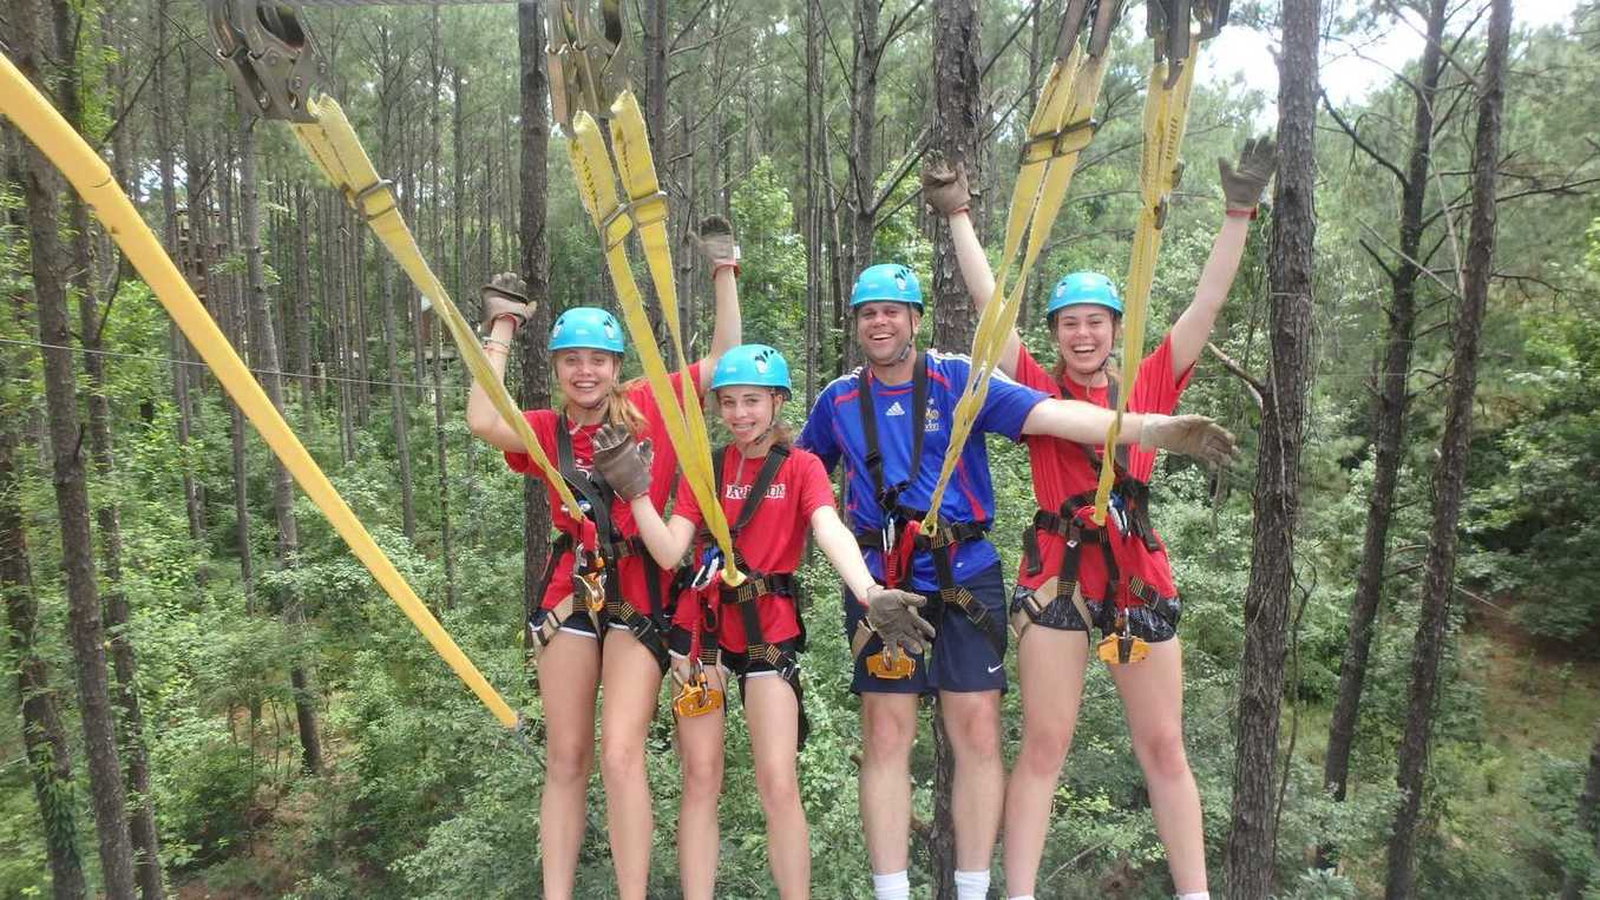 Things Our Guests Love About Our Zipline